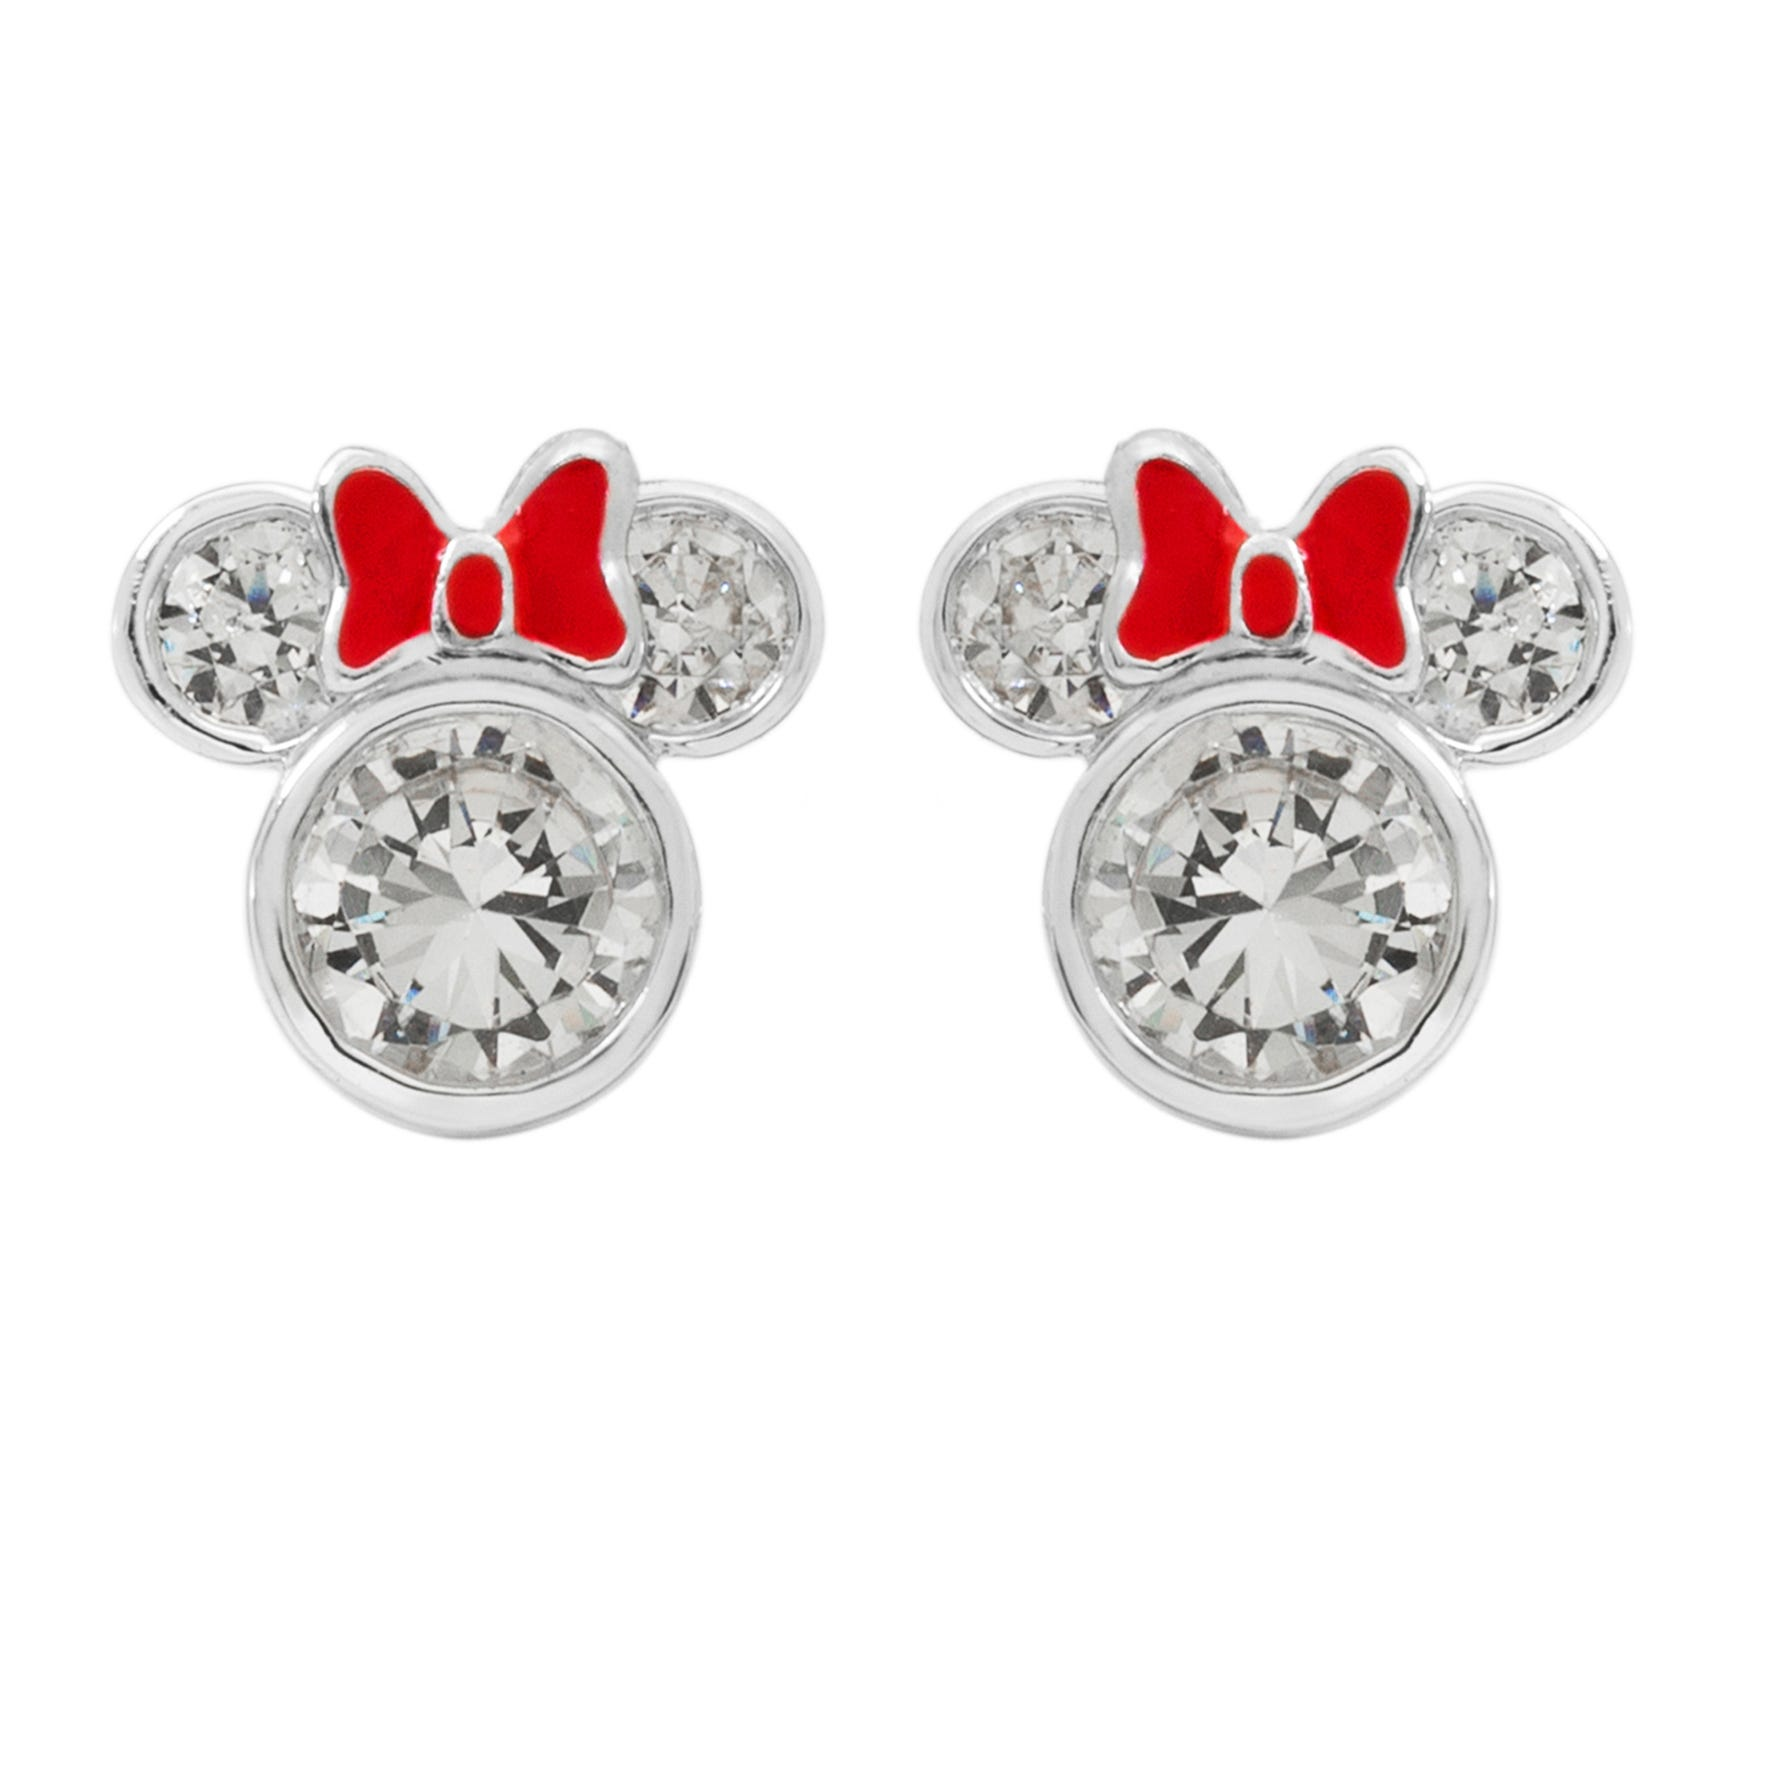 DISNEY© Minnie Mouse CZ Stud Earrings w/ Bow in Sterling Silver